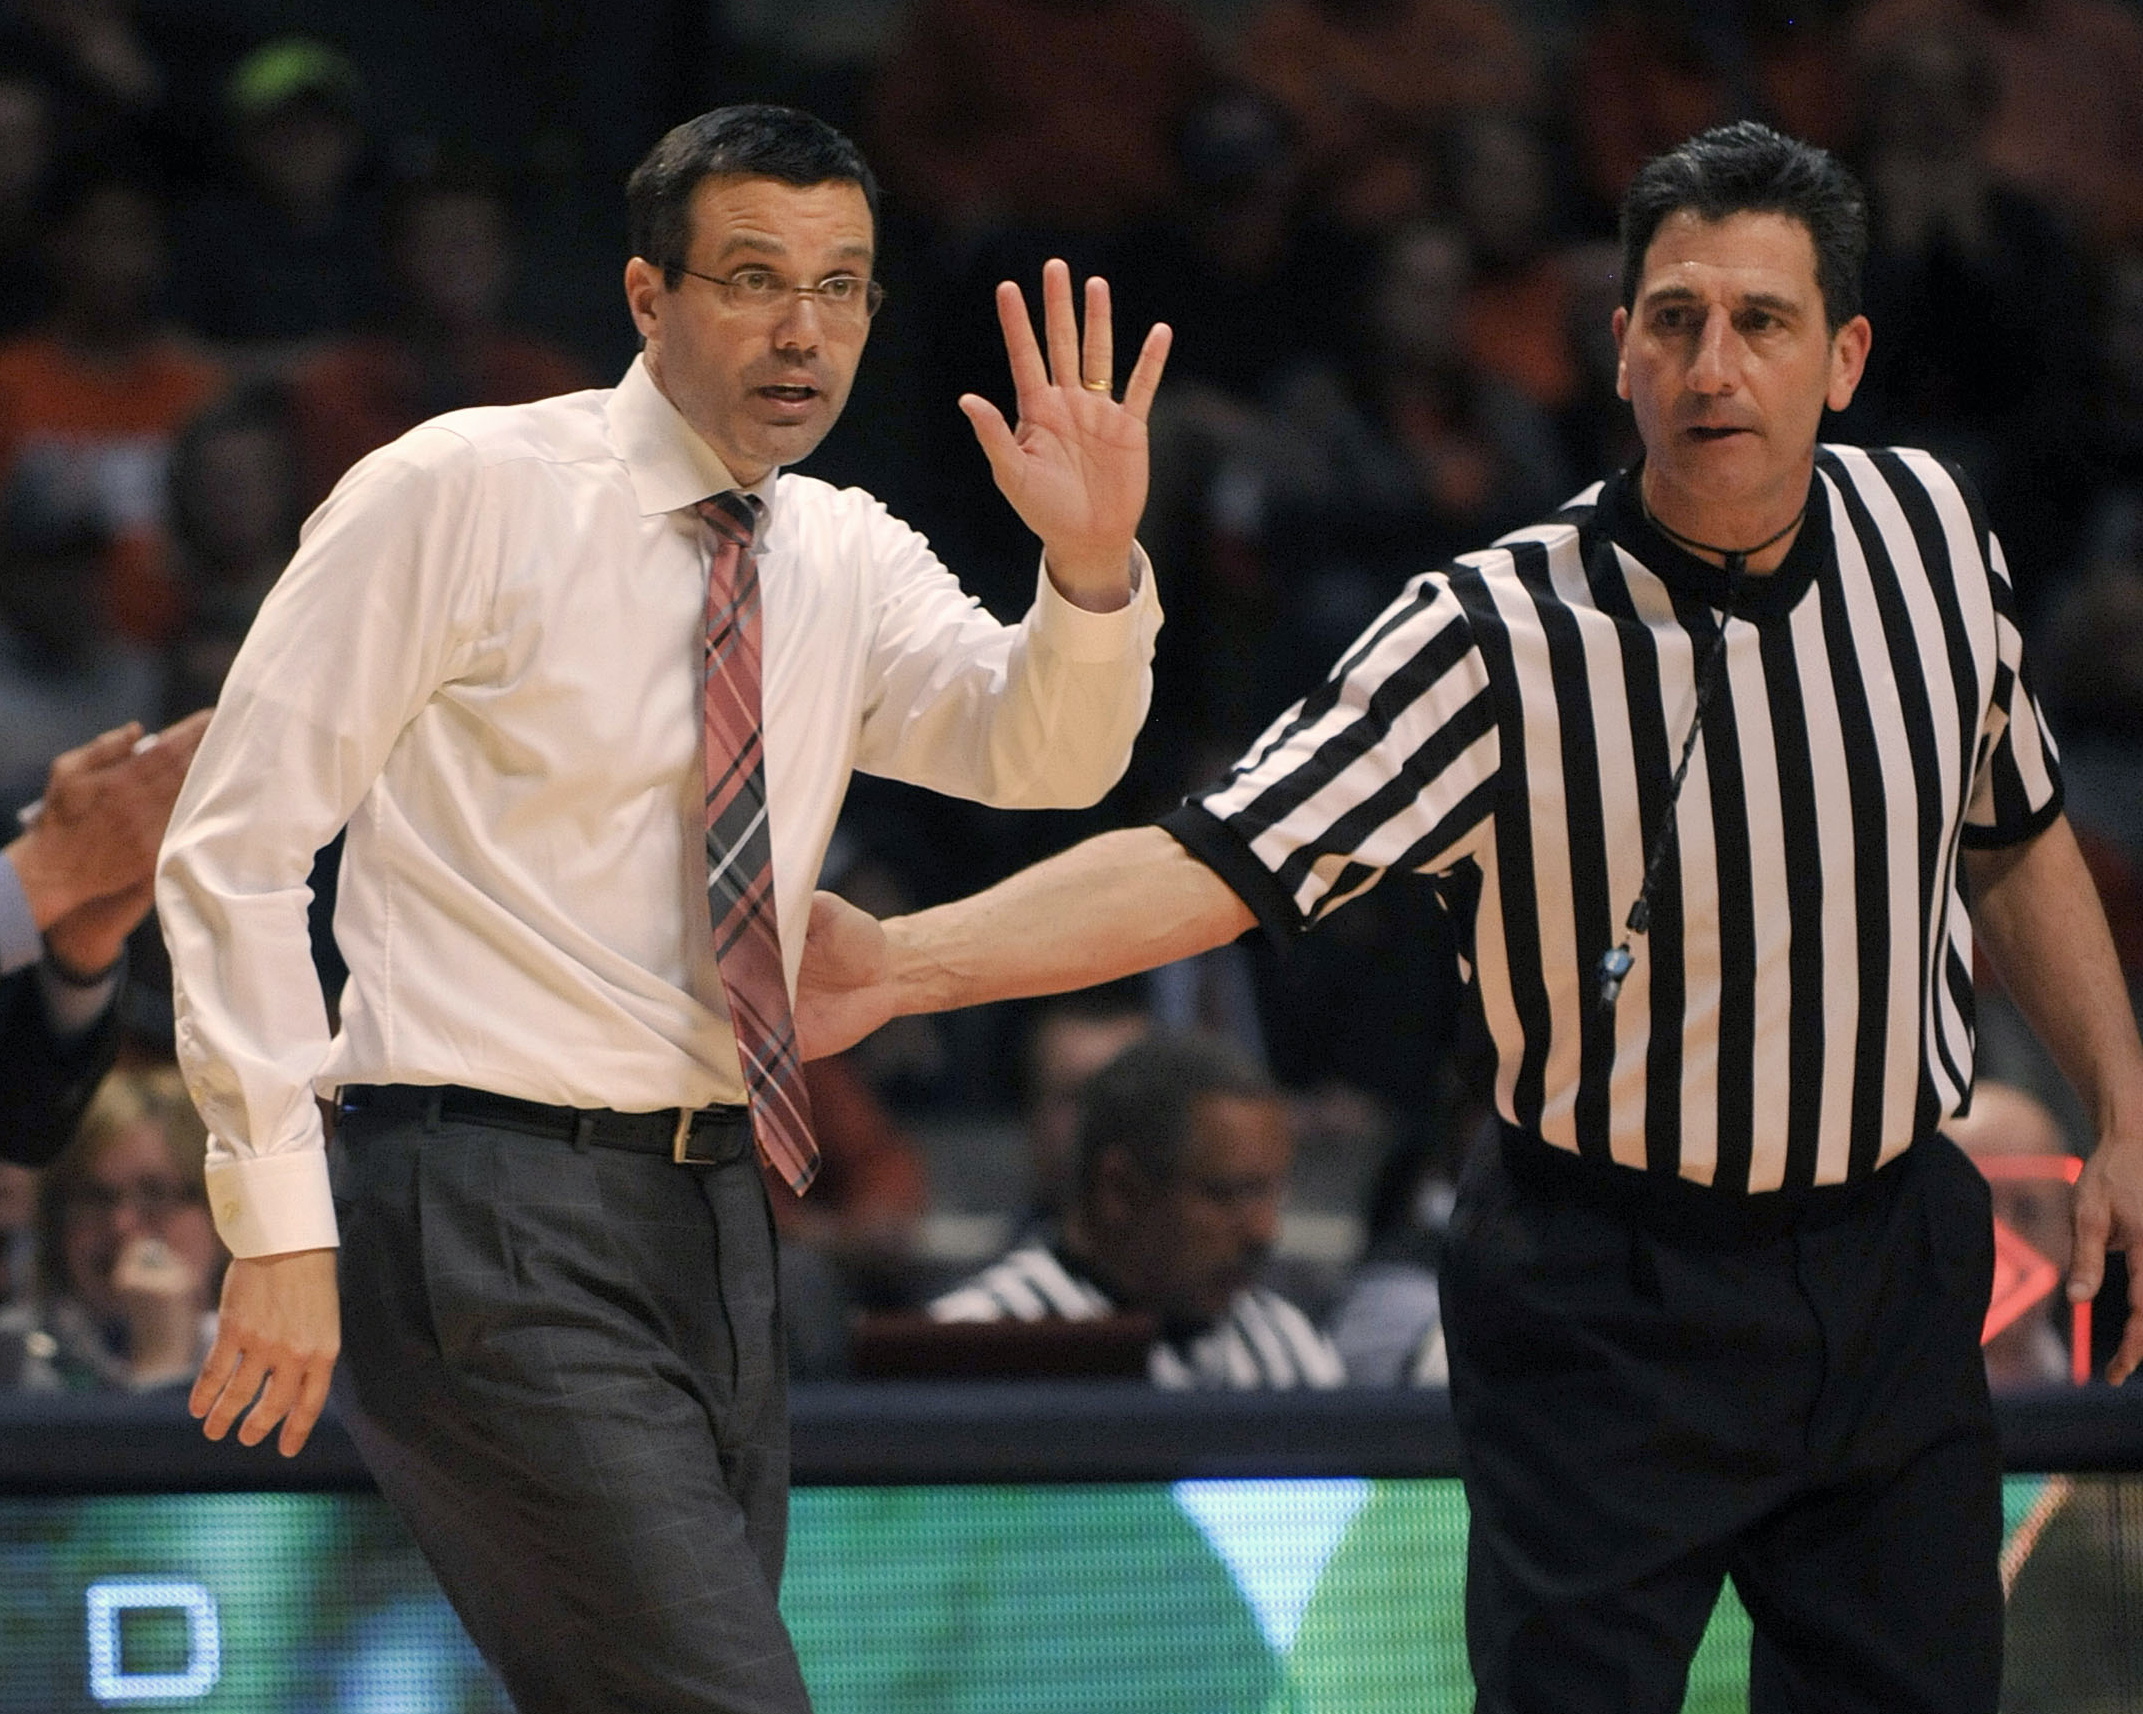 FILE - In this March 4, 2015 file photo, Nebraska coach Tim Miles coaches from the sidelines during an NCAA college basketball game against Illinois in Champaign, Ill. After the unexpected losses of two players and an assistant coach and the expected depa